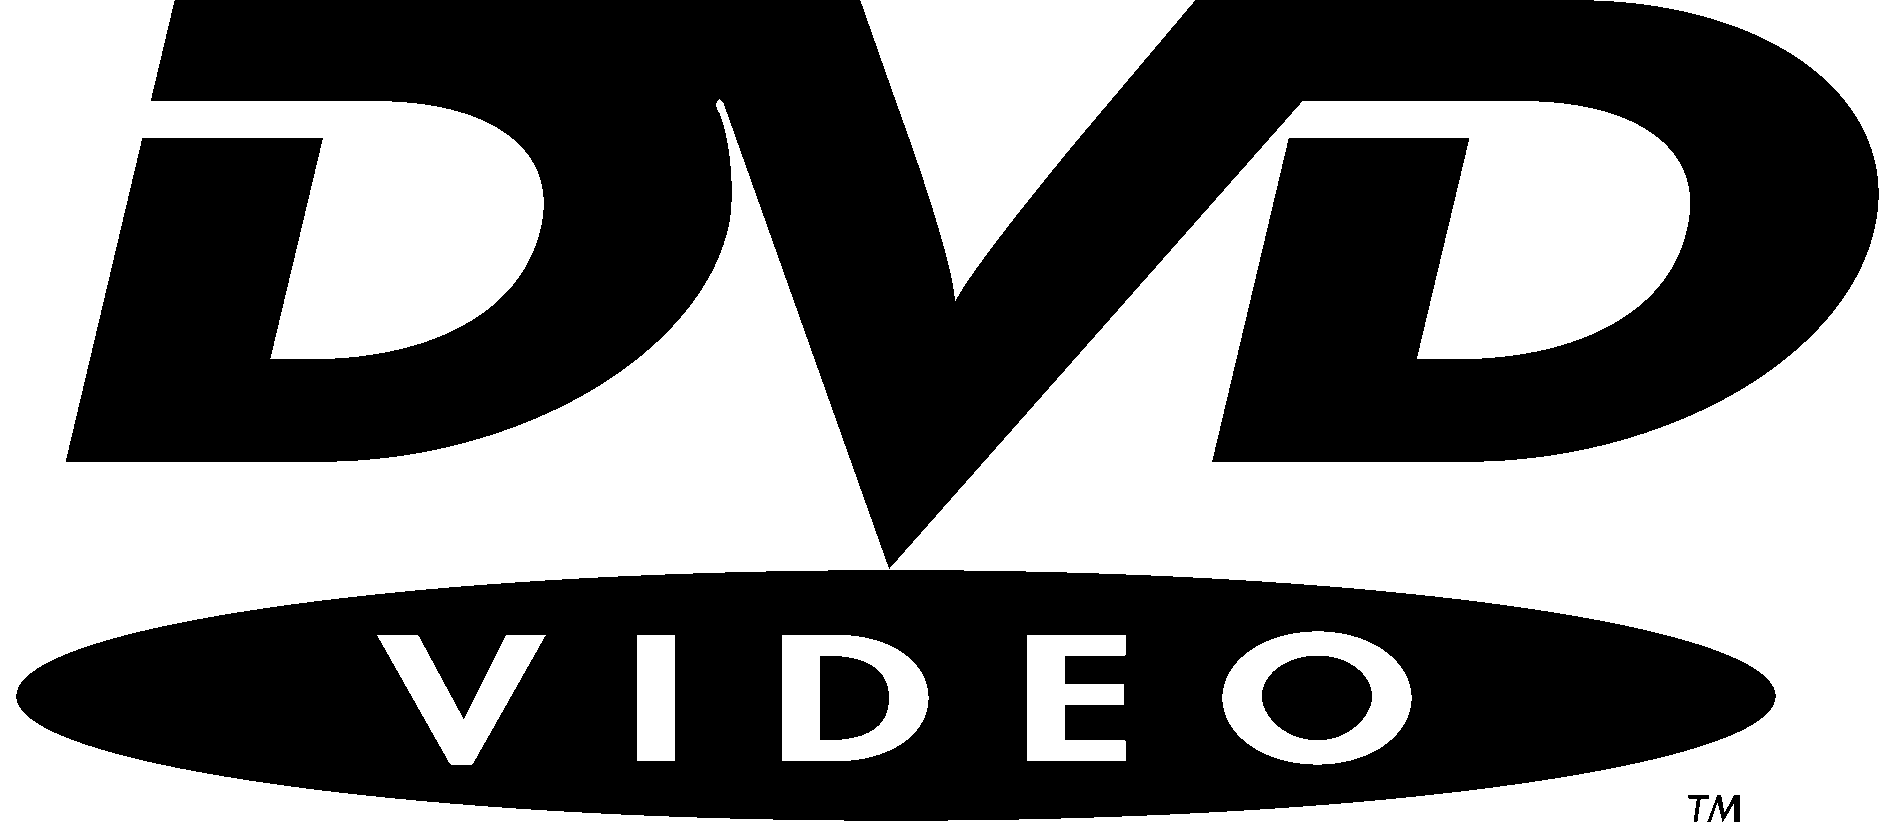 DVD-VIDEO ALBUM